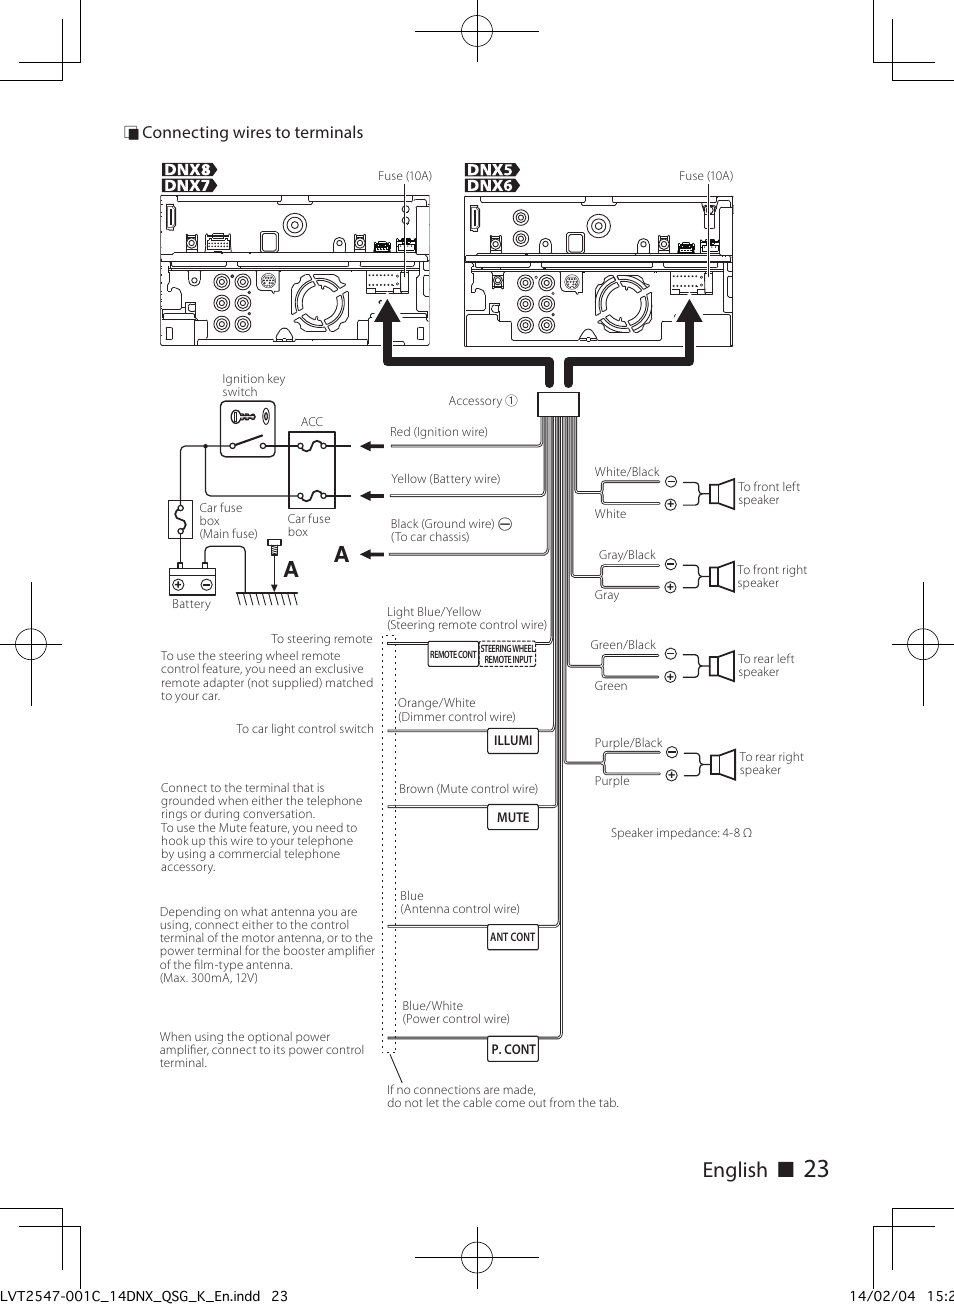 Kenwood Dnx Hd Page on Diagram For Fuse Box Mazda Cx 9 2007